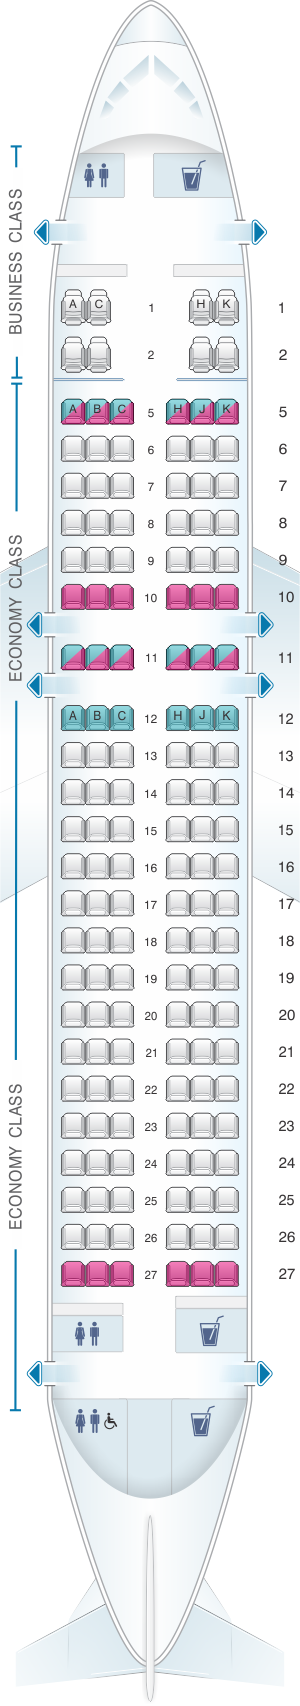 Seat map for ANA - All Nippon Airways Airbus A320 neo